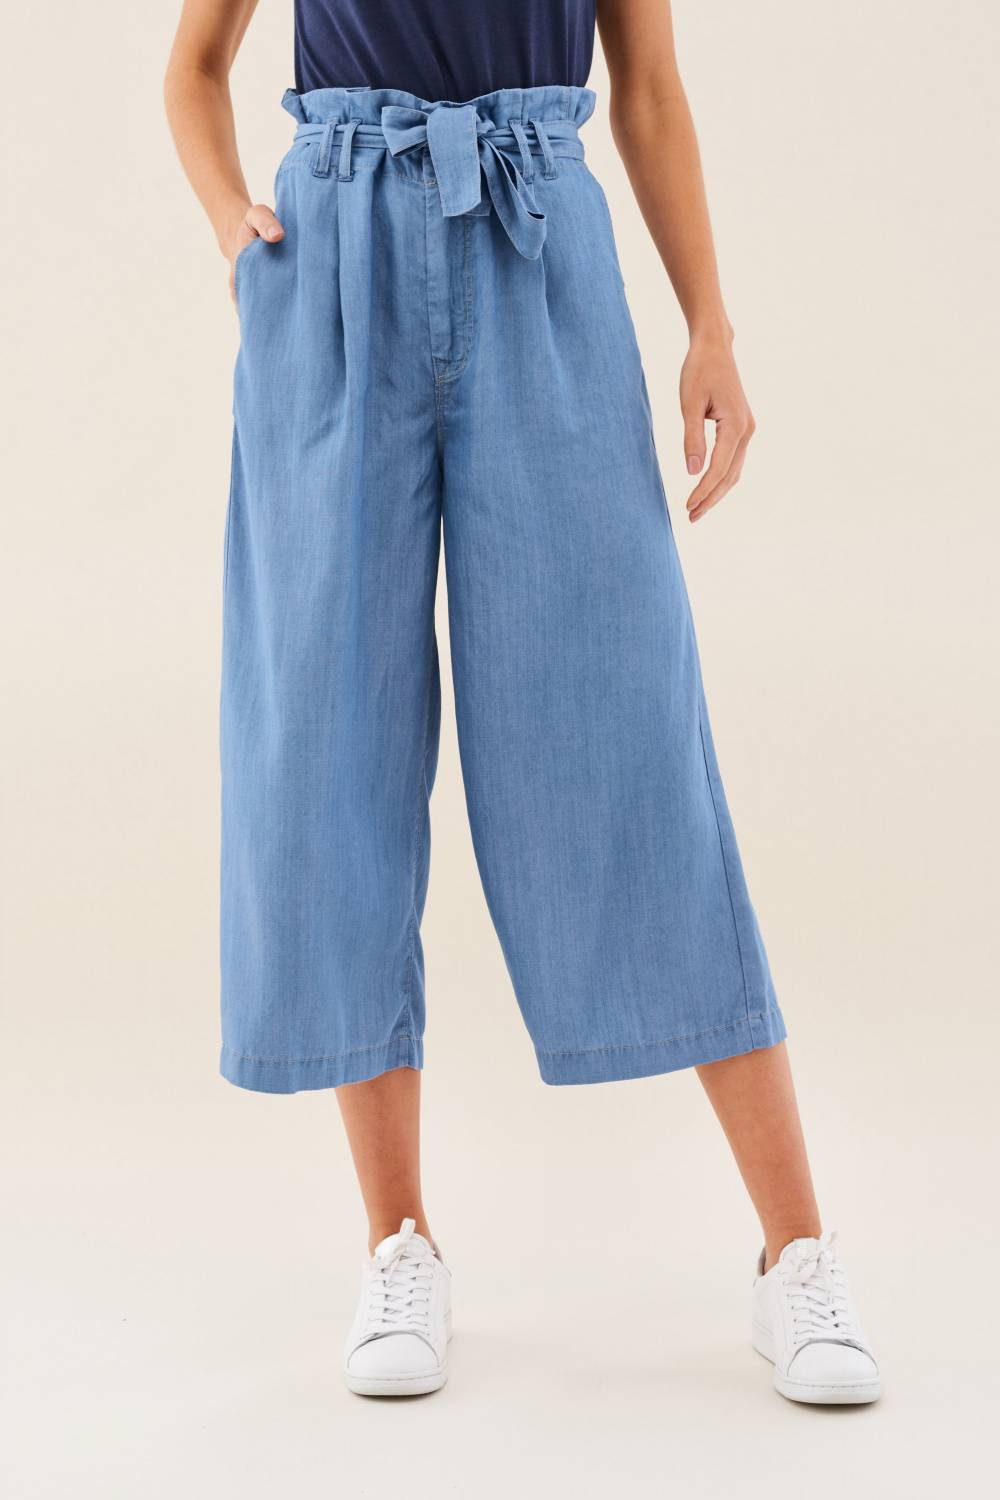 Charlotte culotte jeans in soft light denim - Salsa